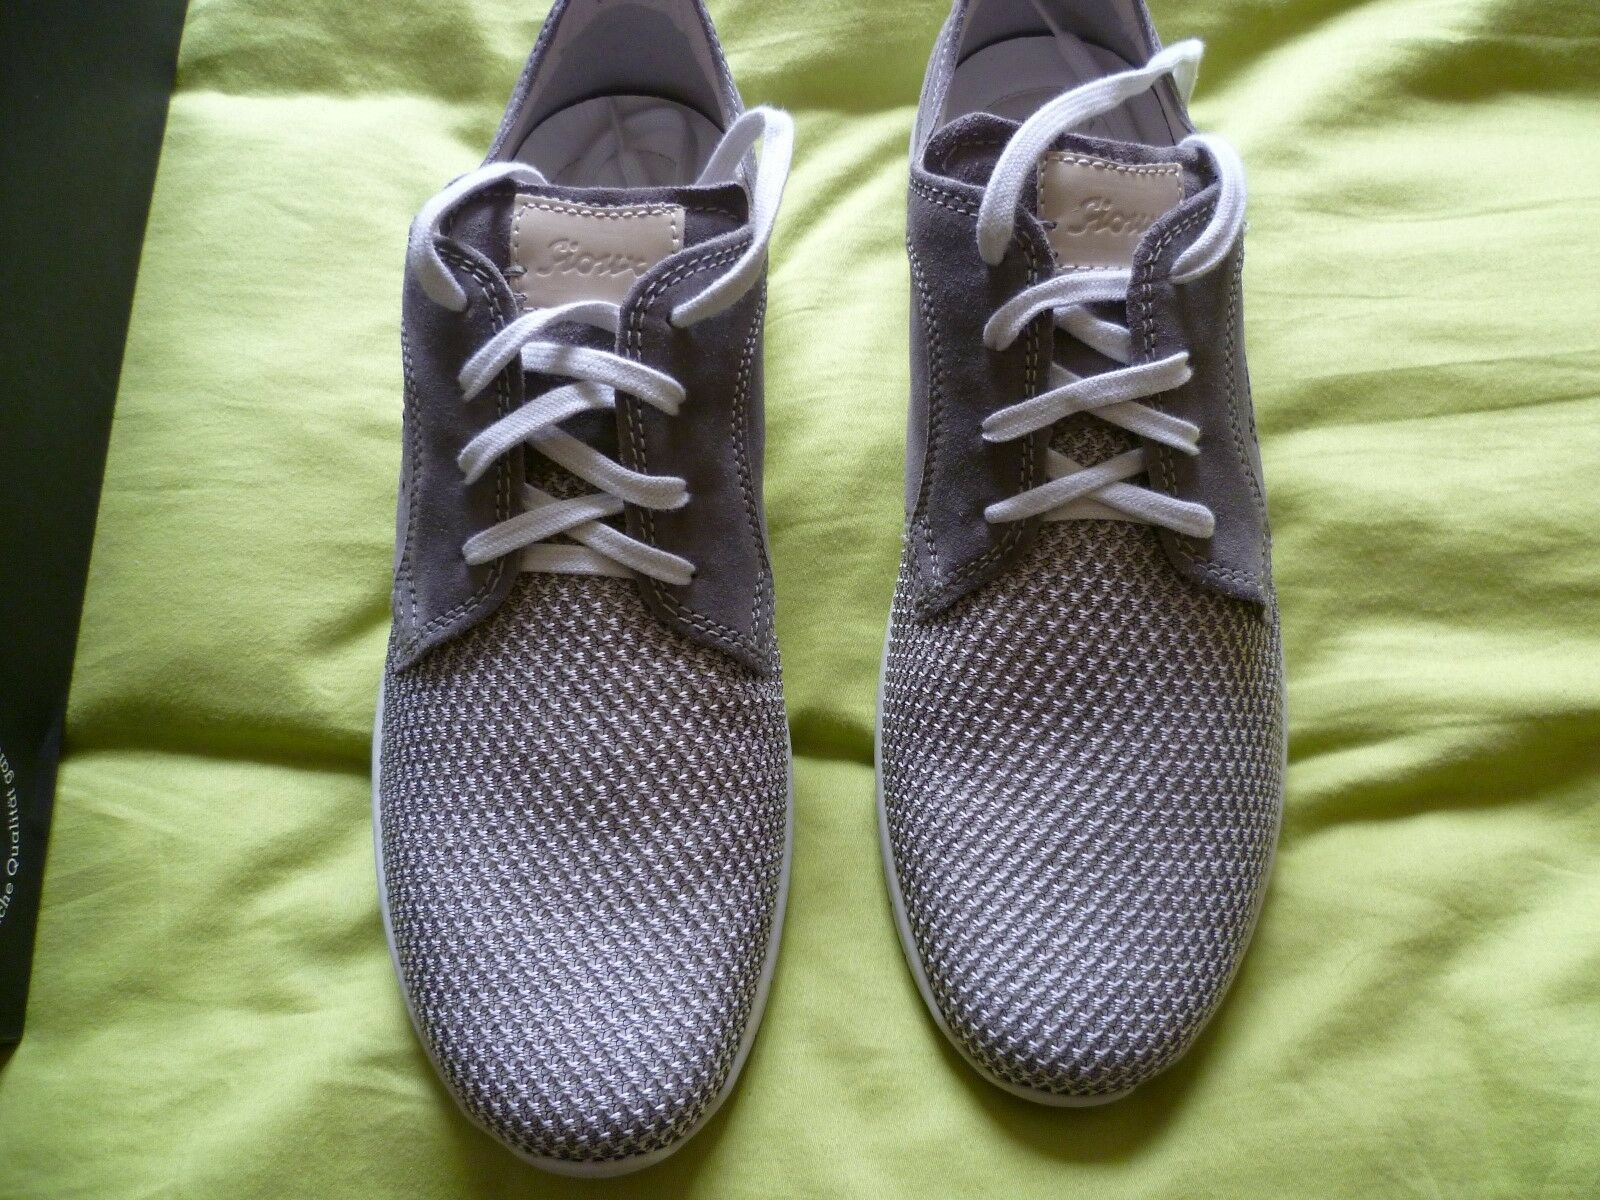 MENS SIOUX HEIMITO-700 SHOES IN GREY SIZE 9.5